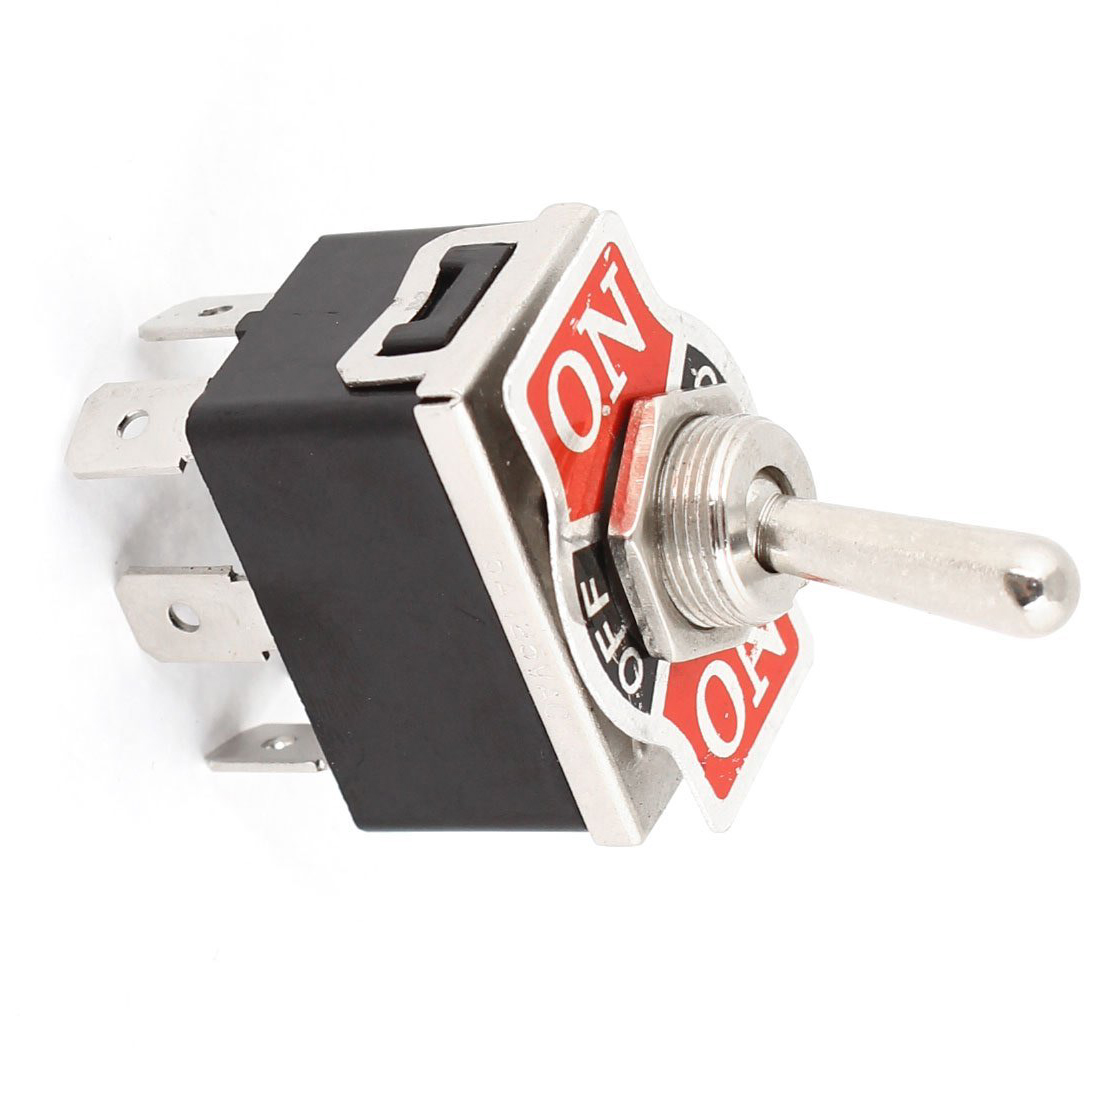 AC 250V/10A 125V/15A DPDT 3 Position ON/OFF/ON 6 Pins Toggle Switch Black+Silver кулисный переключатель oem 2015 dpdt 6 3 6a 250 10 125v ac sku100997